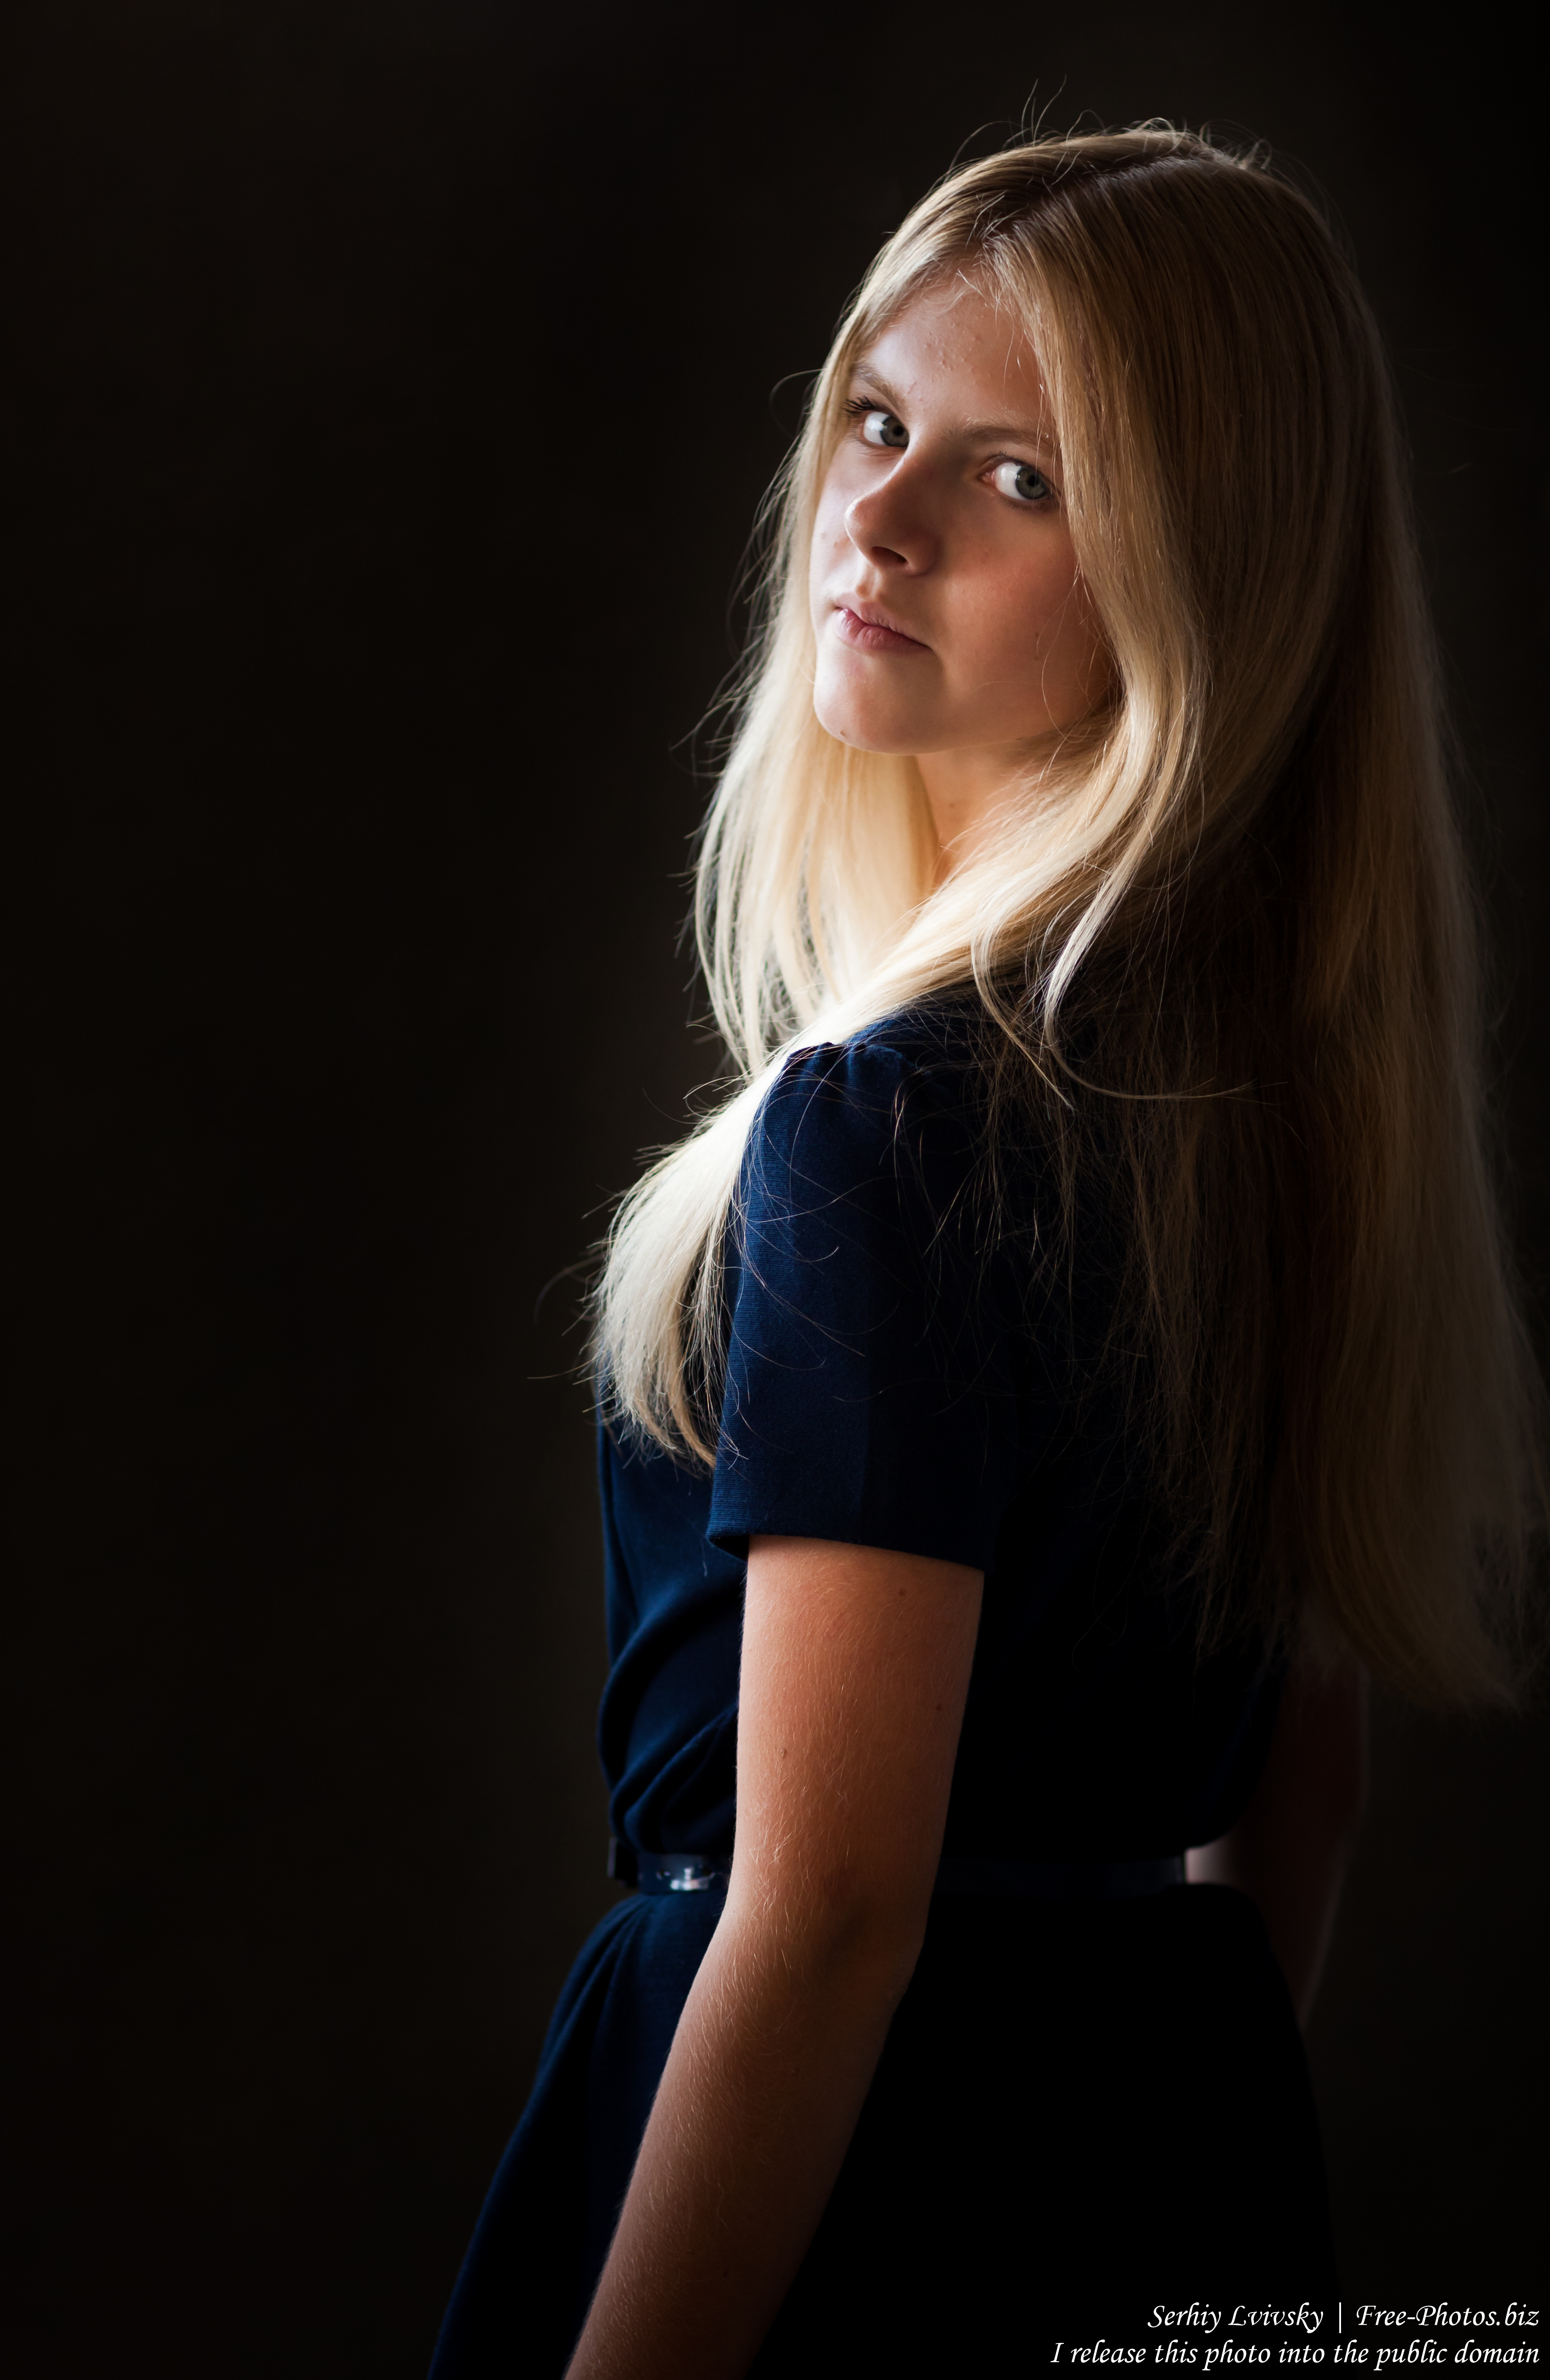 a preteen natural blond girl photographed in August 2016 by Serhiy Lvivsky, picture 6